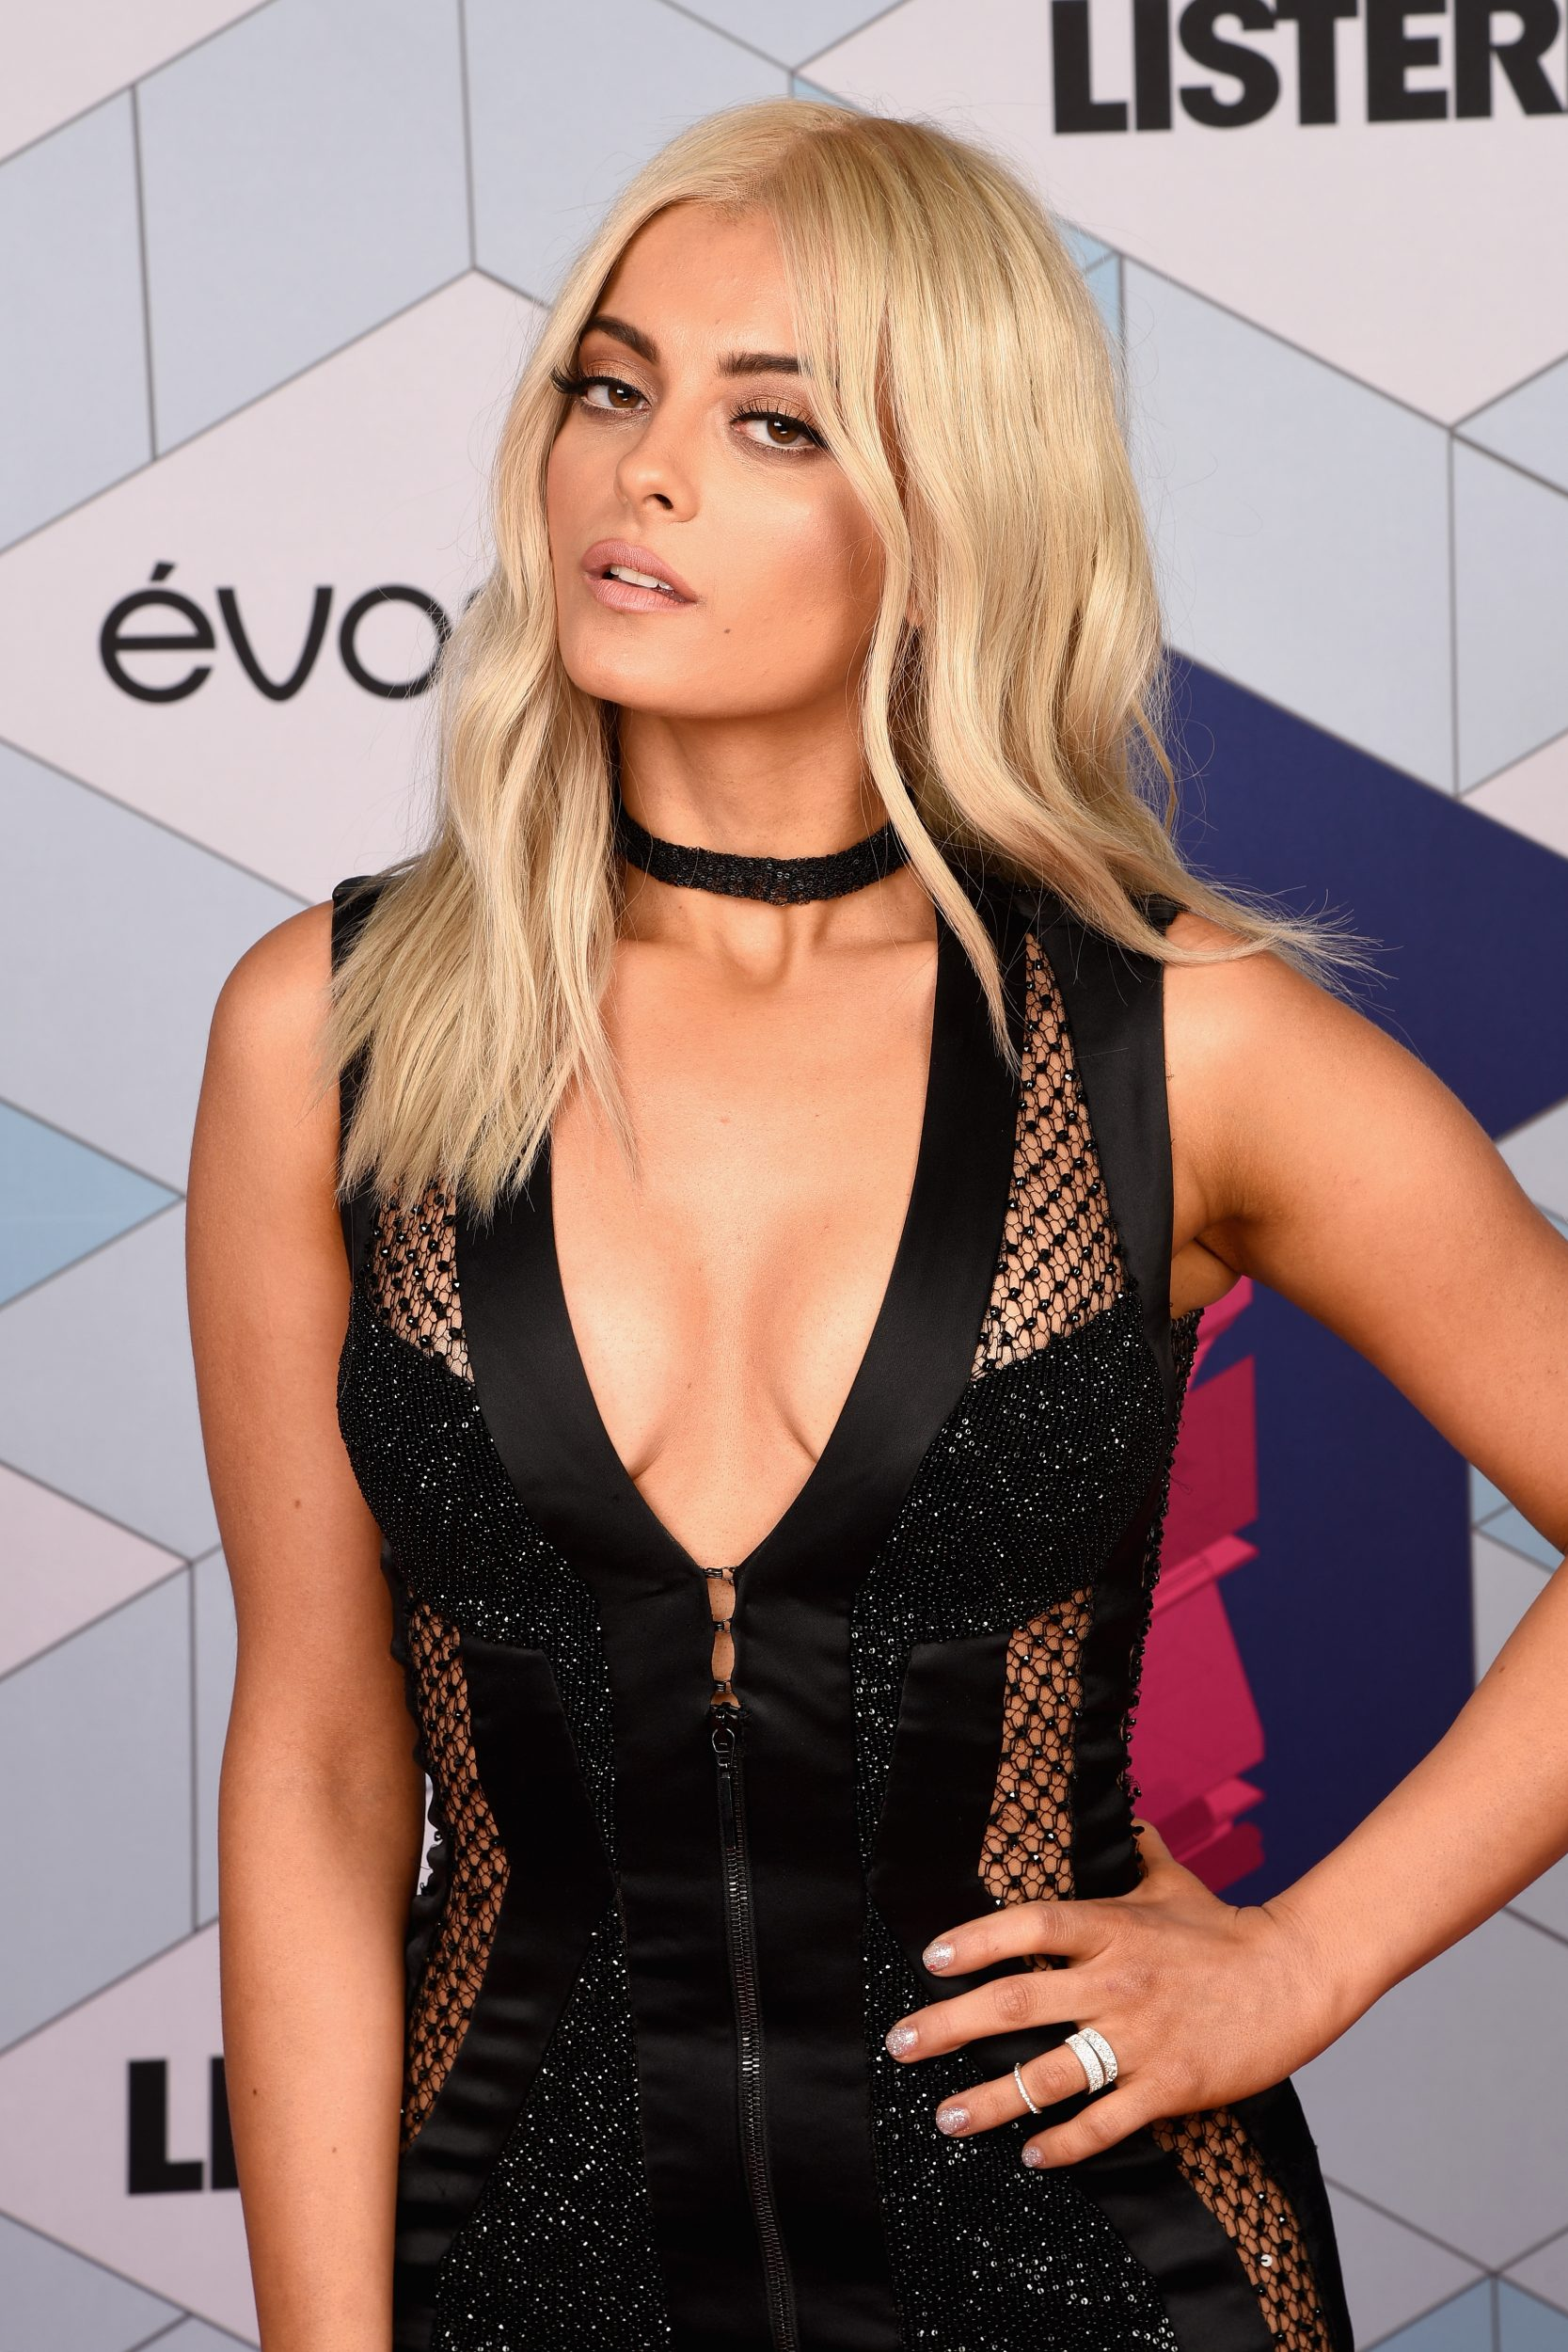 ROTTERDAM, NETHERLANDS - NOVEMBER 06: (EXCLUSIVE COVERAGE) Host Bebe Rexha attends the MTV Europe Music Awards 2016 on November 6, 2016 in Rotterdam, Netherlands. (Photo by Dave Hogan/MTV 2016/Getty Images) *** Local Caption *** Bebe Rexha